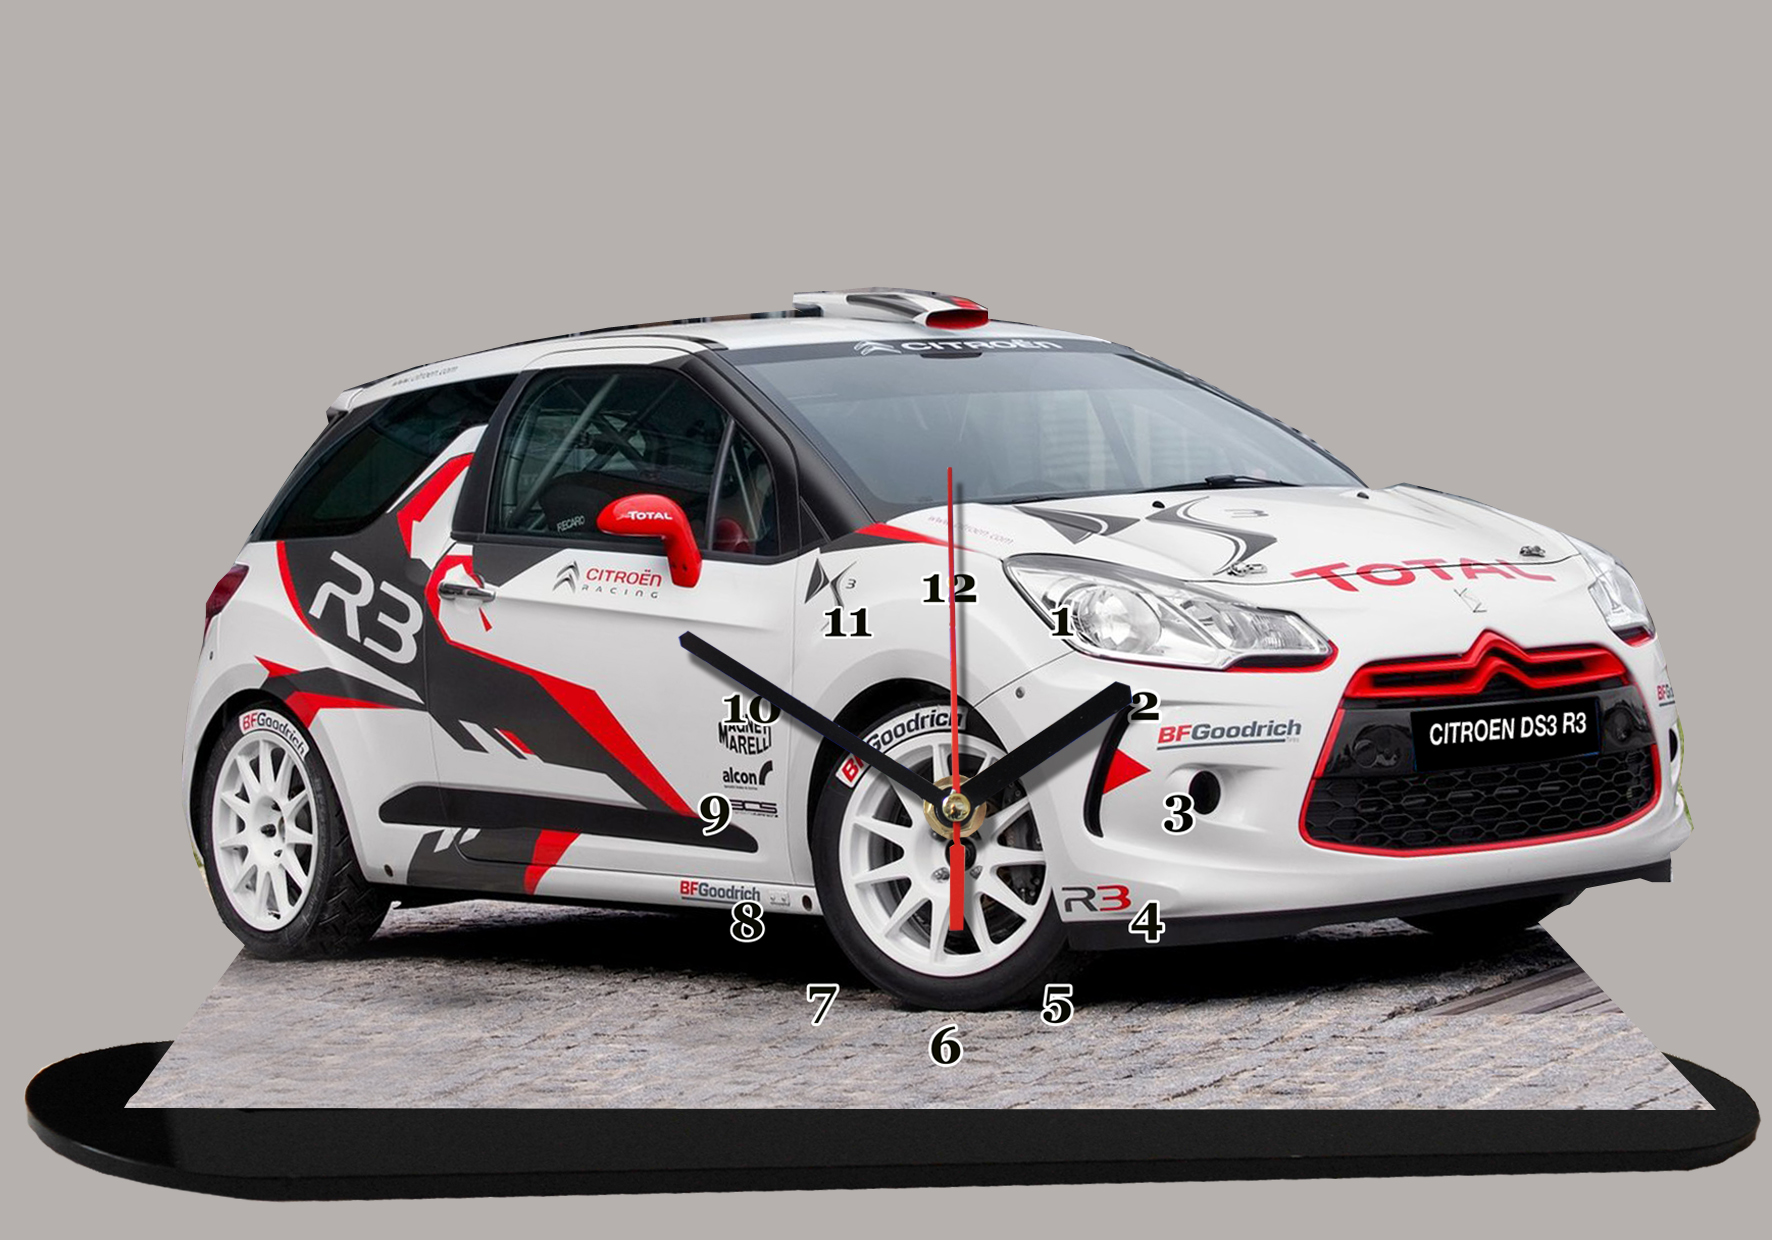 la nouvelle citroen ds 3 r3 max en miniature auto horloge. Black Bedroom Furniture Sets. Home Design Ideas